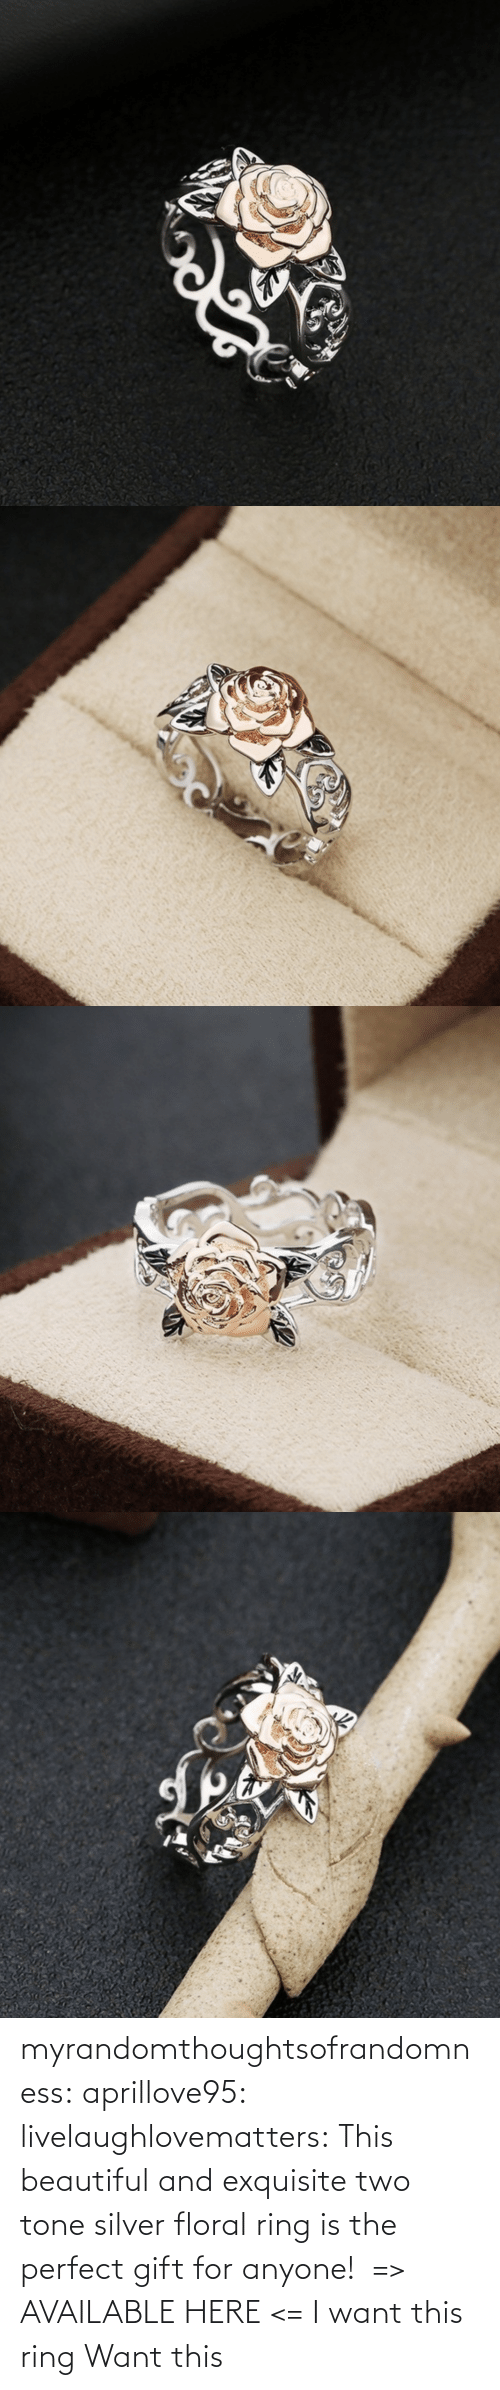 want: myrandomthoughtsofrandomness:  aprillove95: livelaughlovematters:  This beautiful and exquisite two tone silver floral ring is the perfect gift for anyone! => AVAILABLE HERE <=    I want this ring     Want this